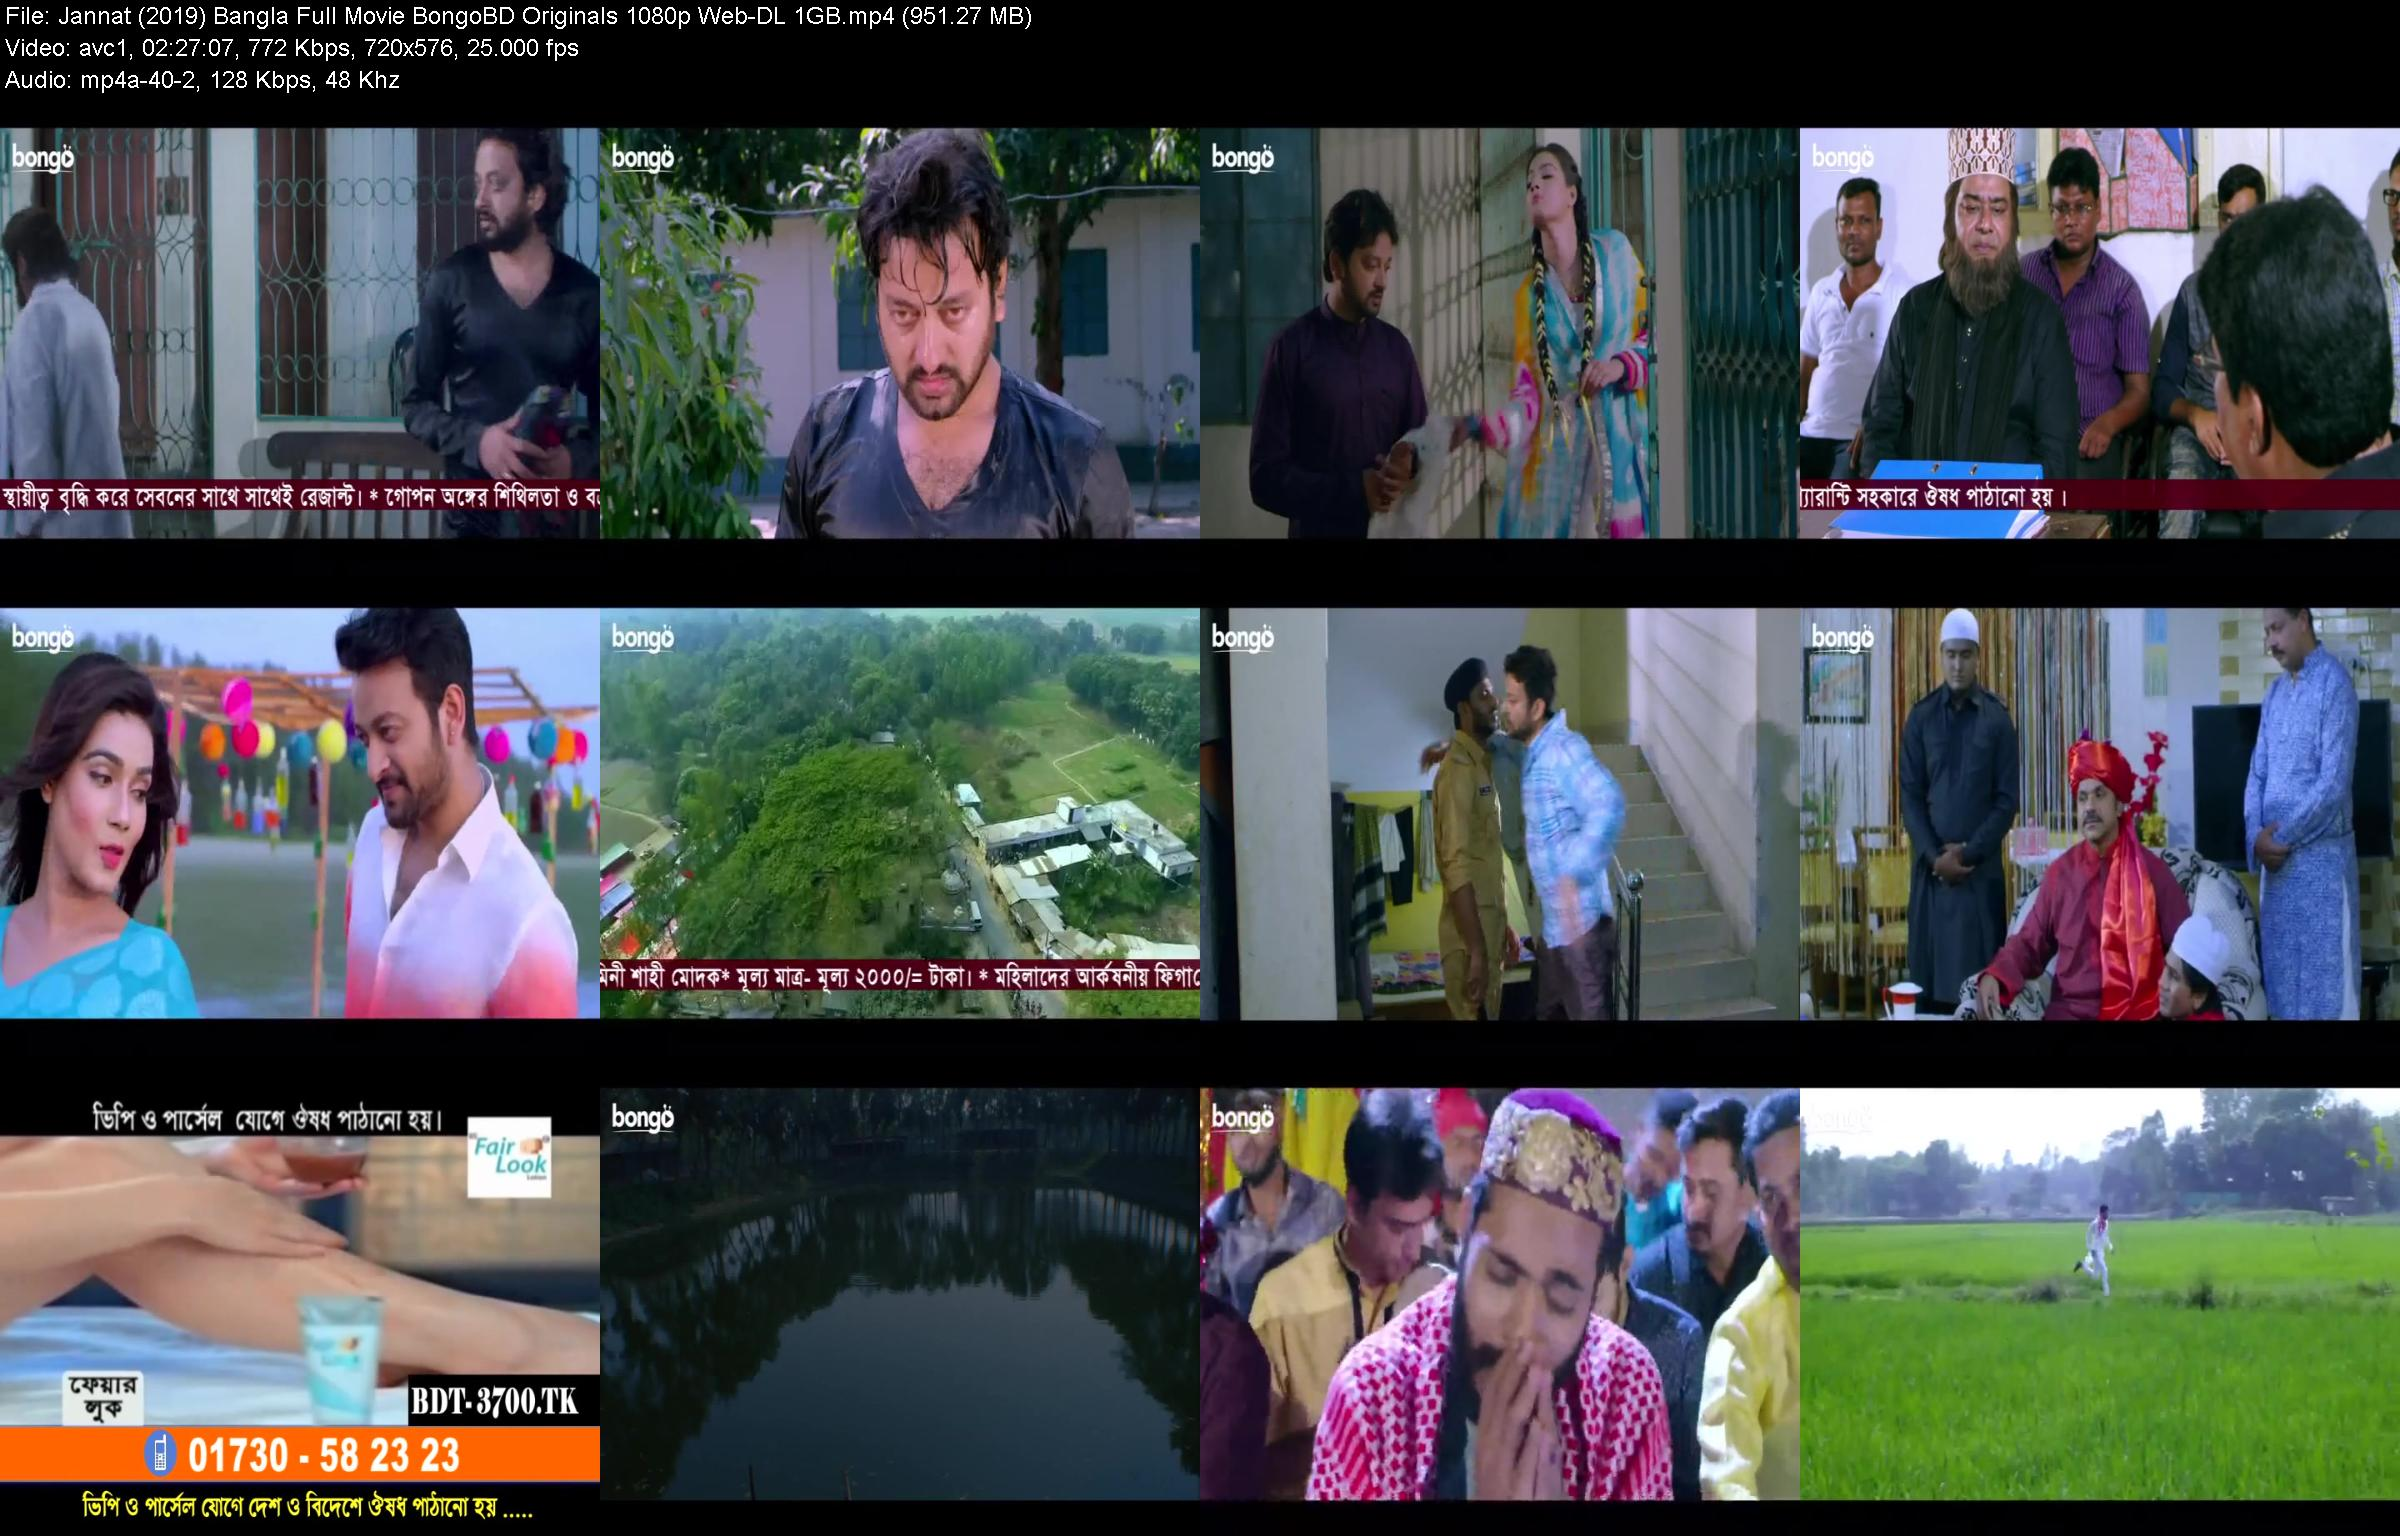 [Bild: 120582270_jannat-2019-bangla-full-movie-...dl-1gb.jpg]